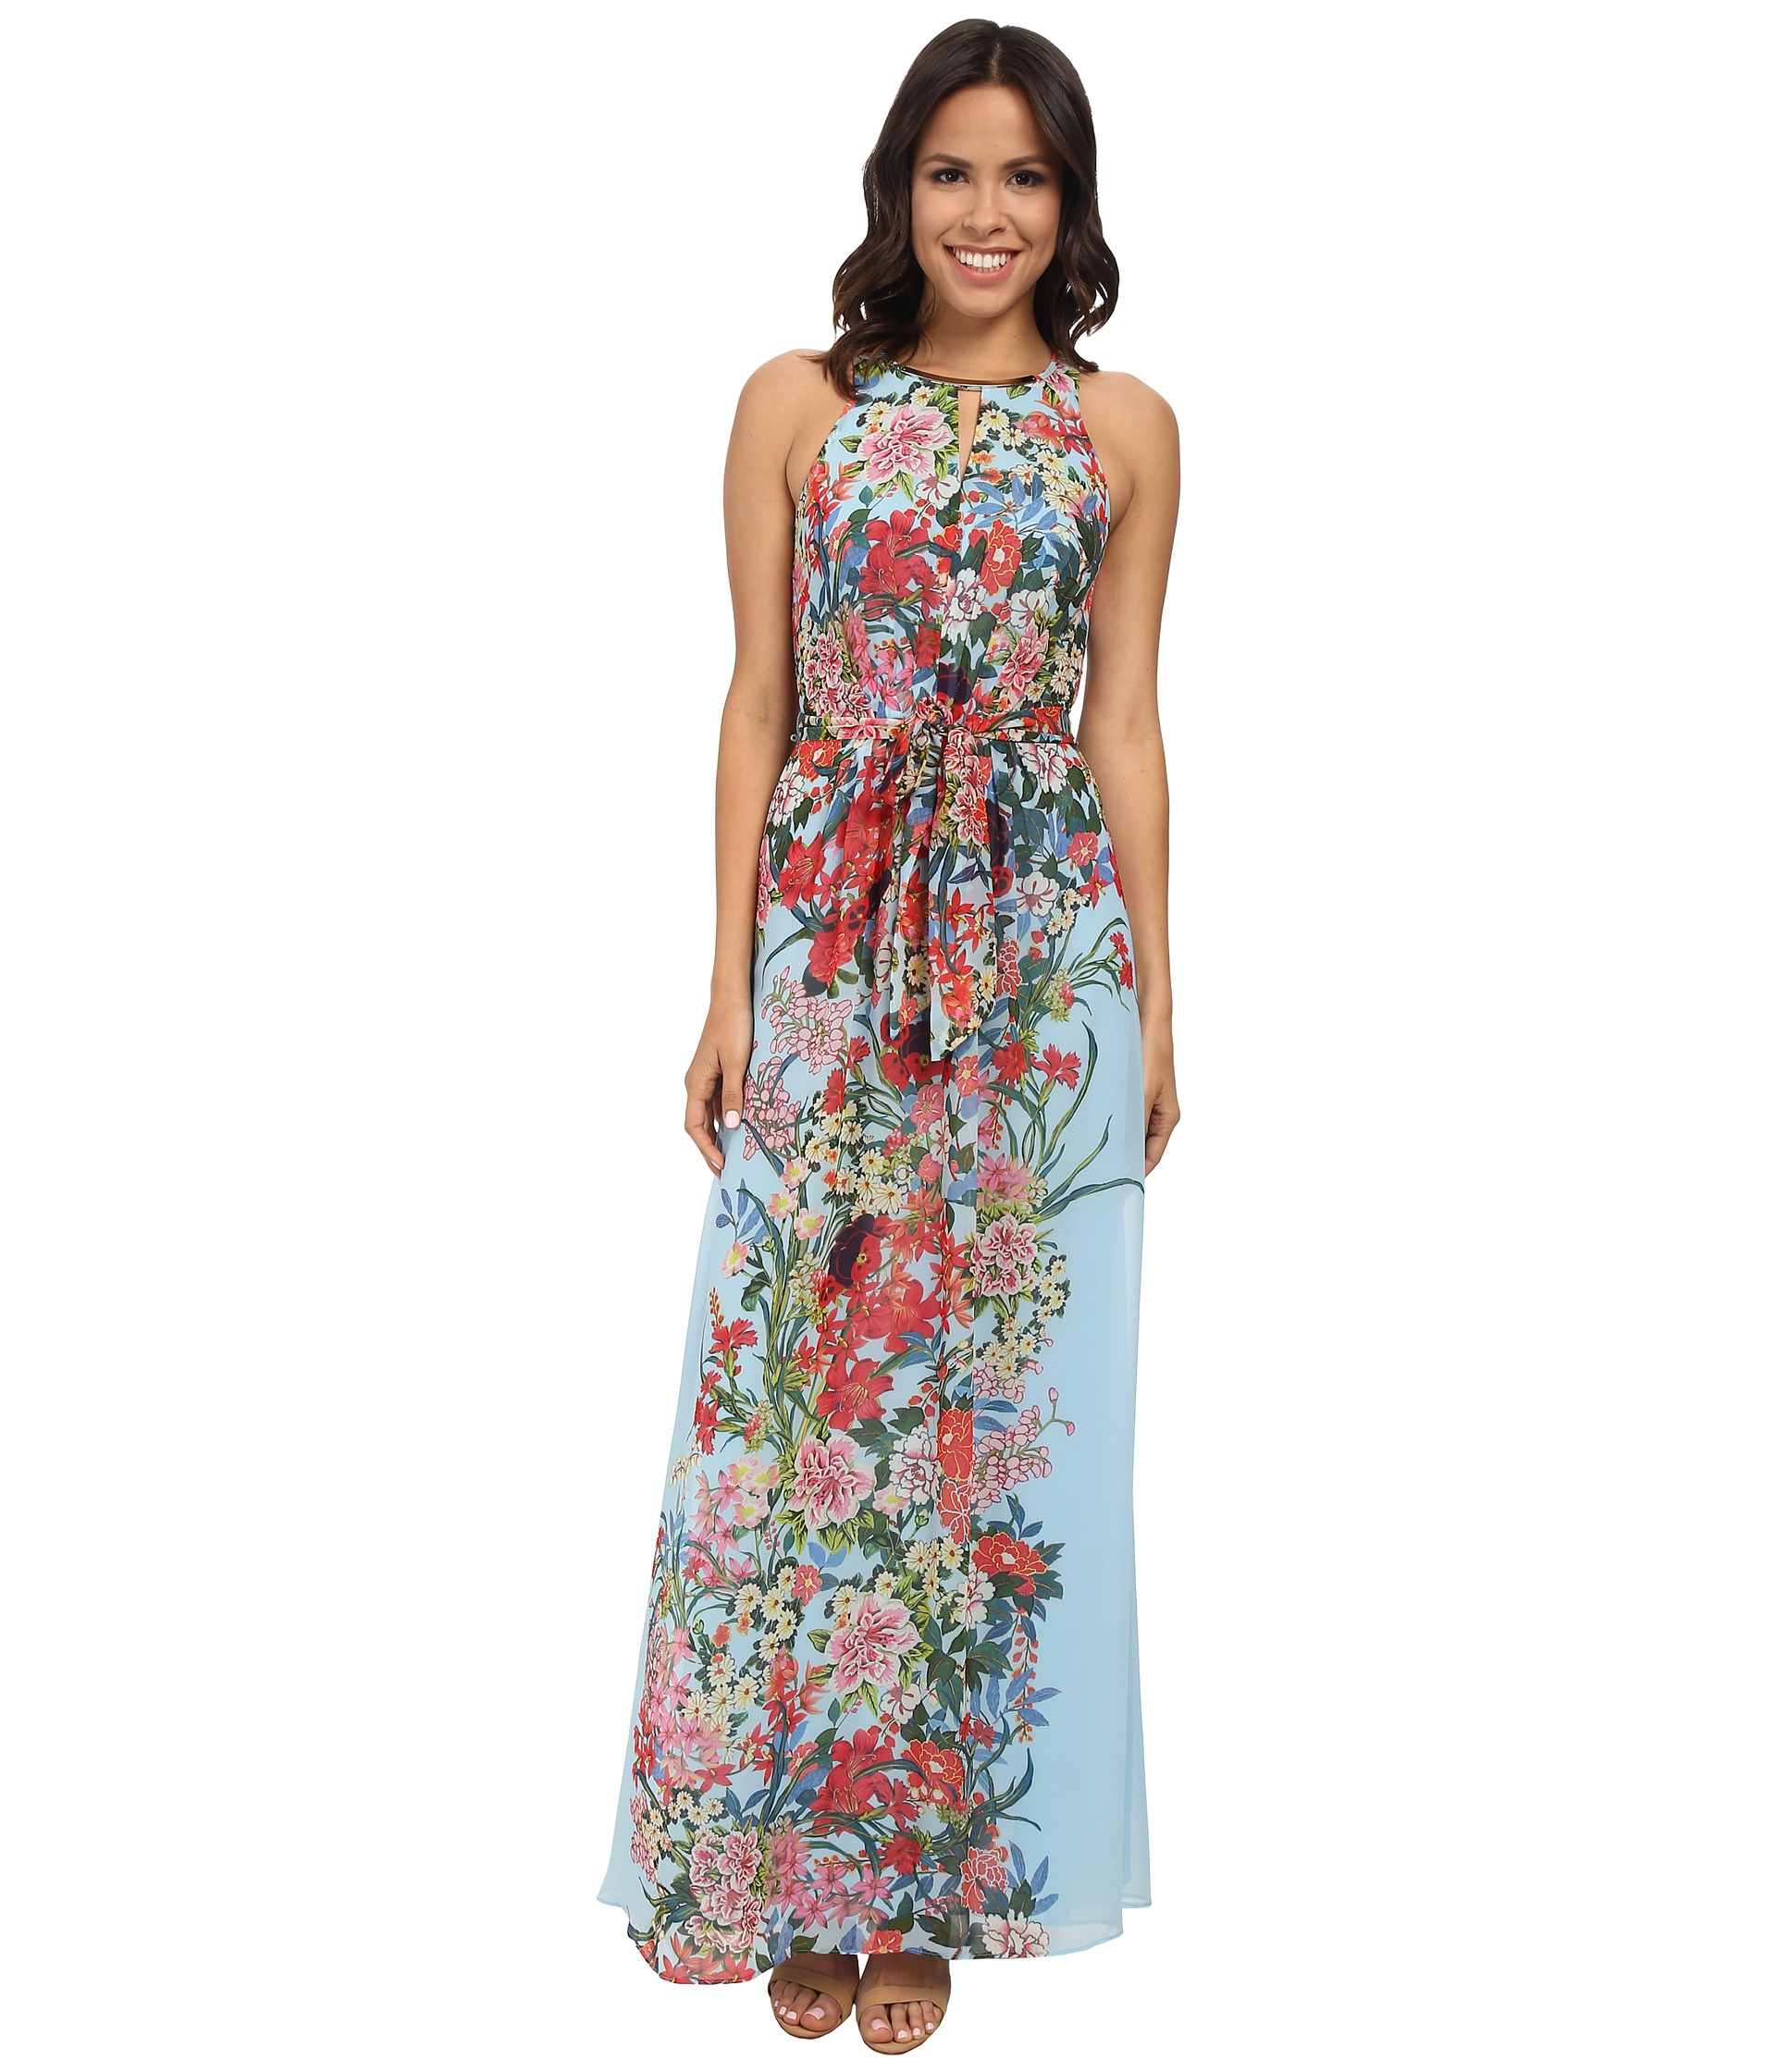 1985a1877e31 Adrianna Papell Blue Printed Multi Floral Halter Long Maxi Dress